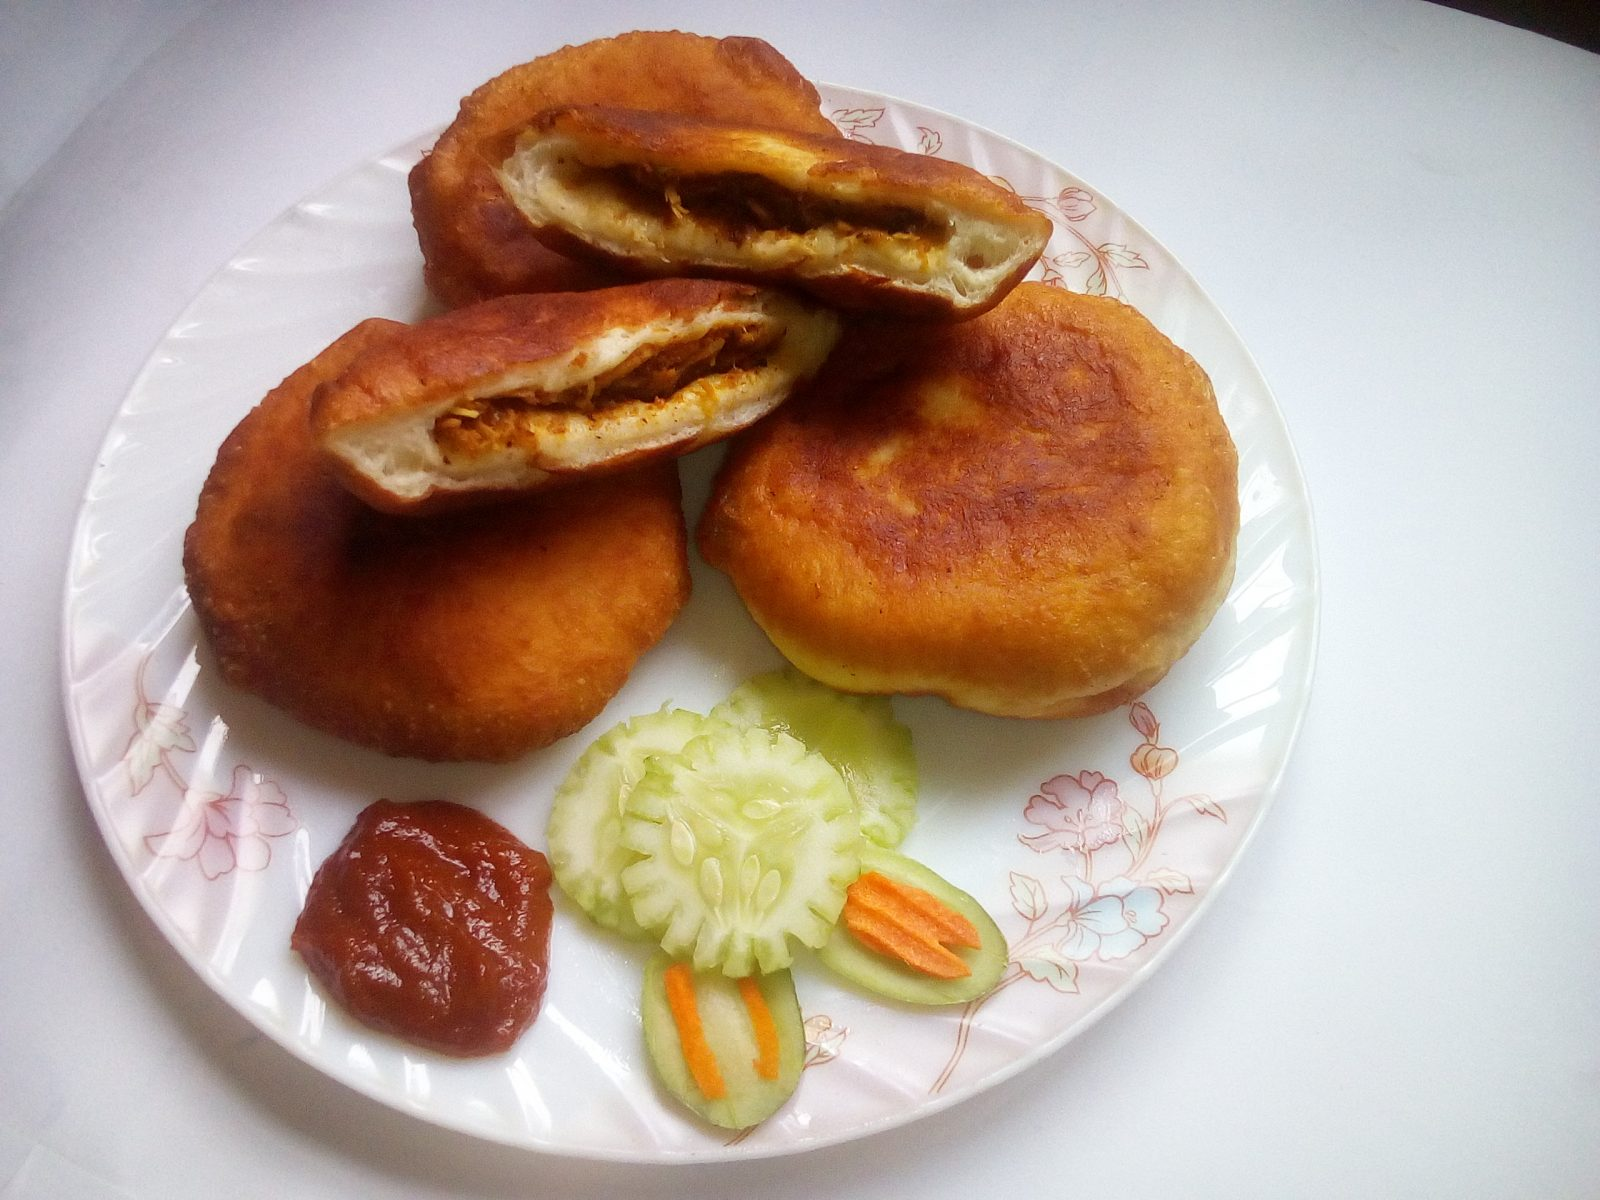 Chicken Bun from Sompurna Rannaghor